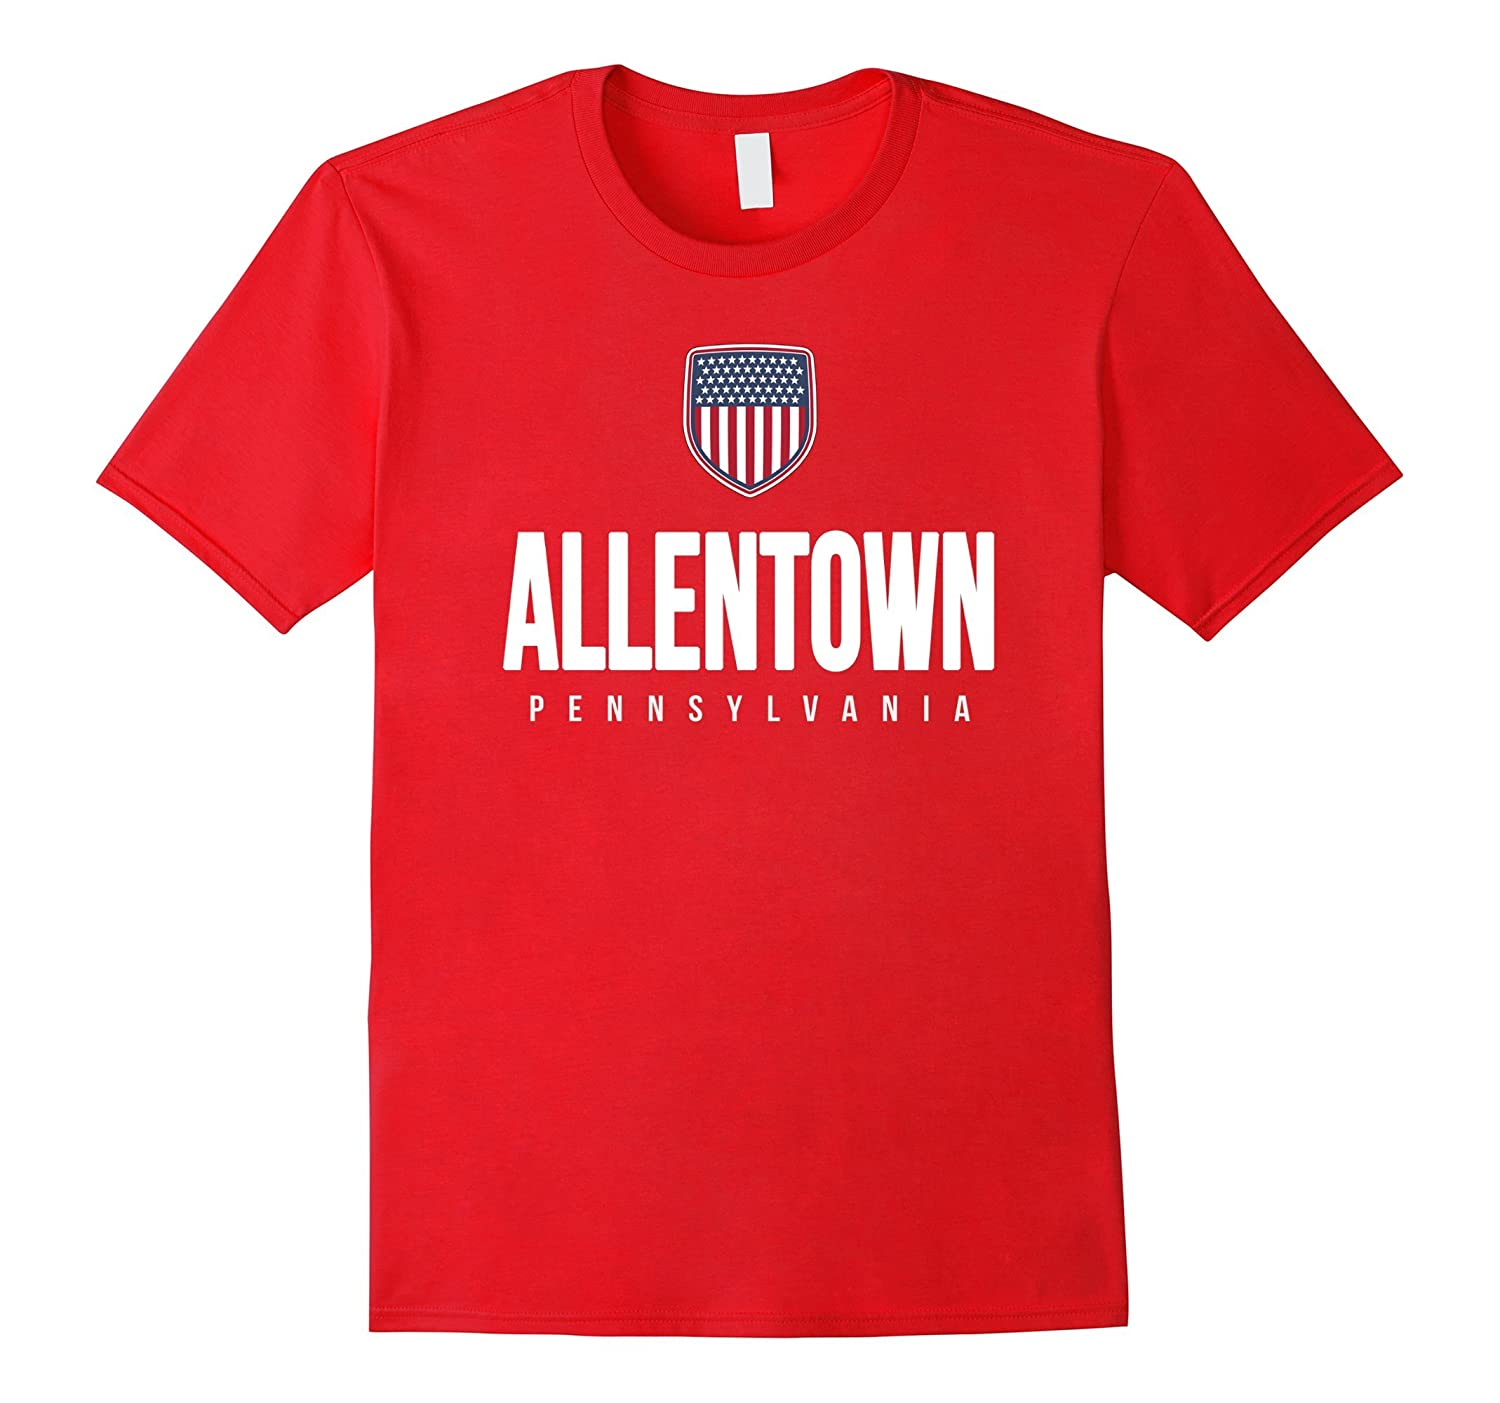 Allentown Pennsylvania T-shirt City Hometown Travel Souvenir-CD